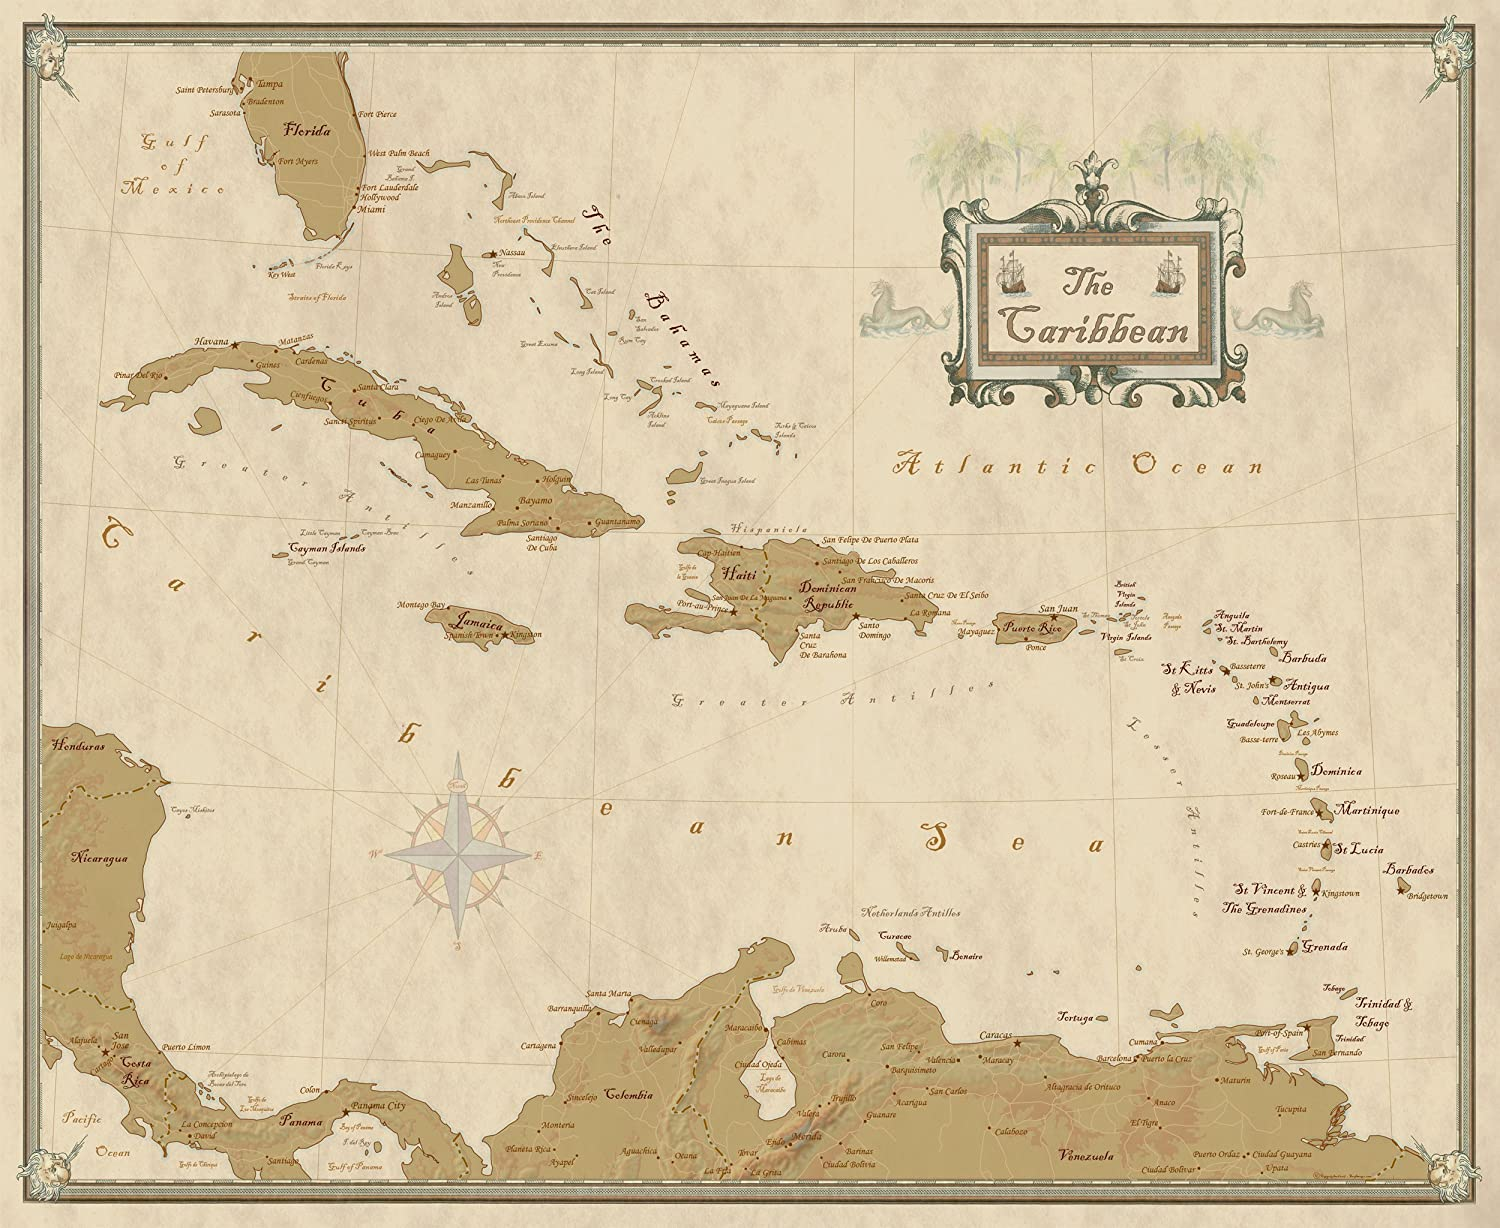 FINE-ART-PRINT-Caribbean-1806-Poster-Paper-or-Canvas-for-home-decor